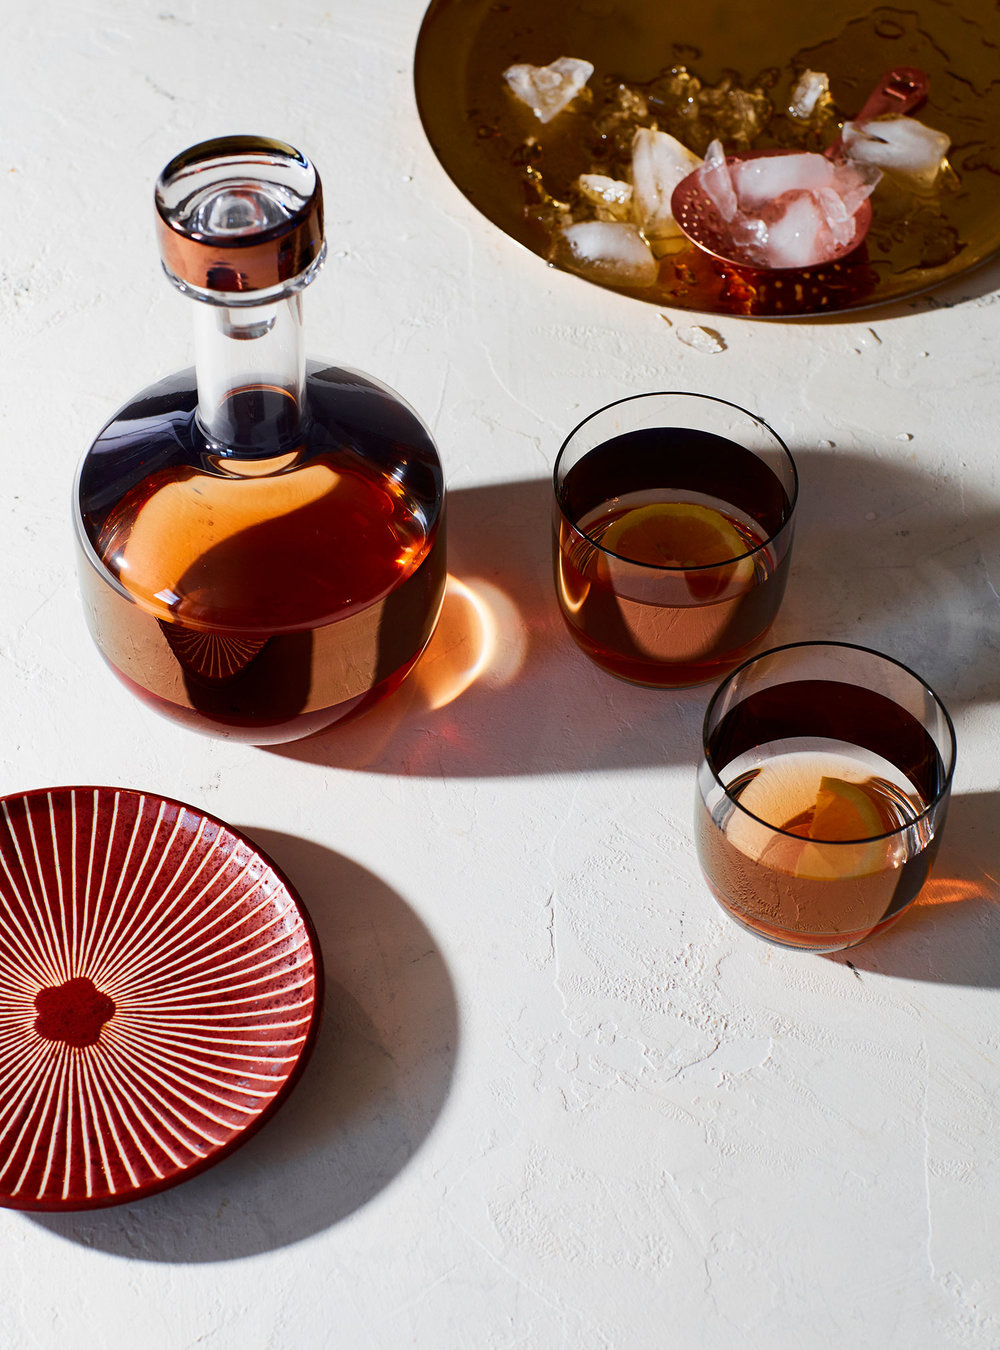 Decanter and Vessels by Tom Dixon Studio - Ice bowl from Michele Varian - Plate from Aero Studios